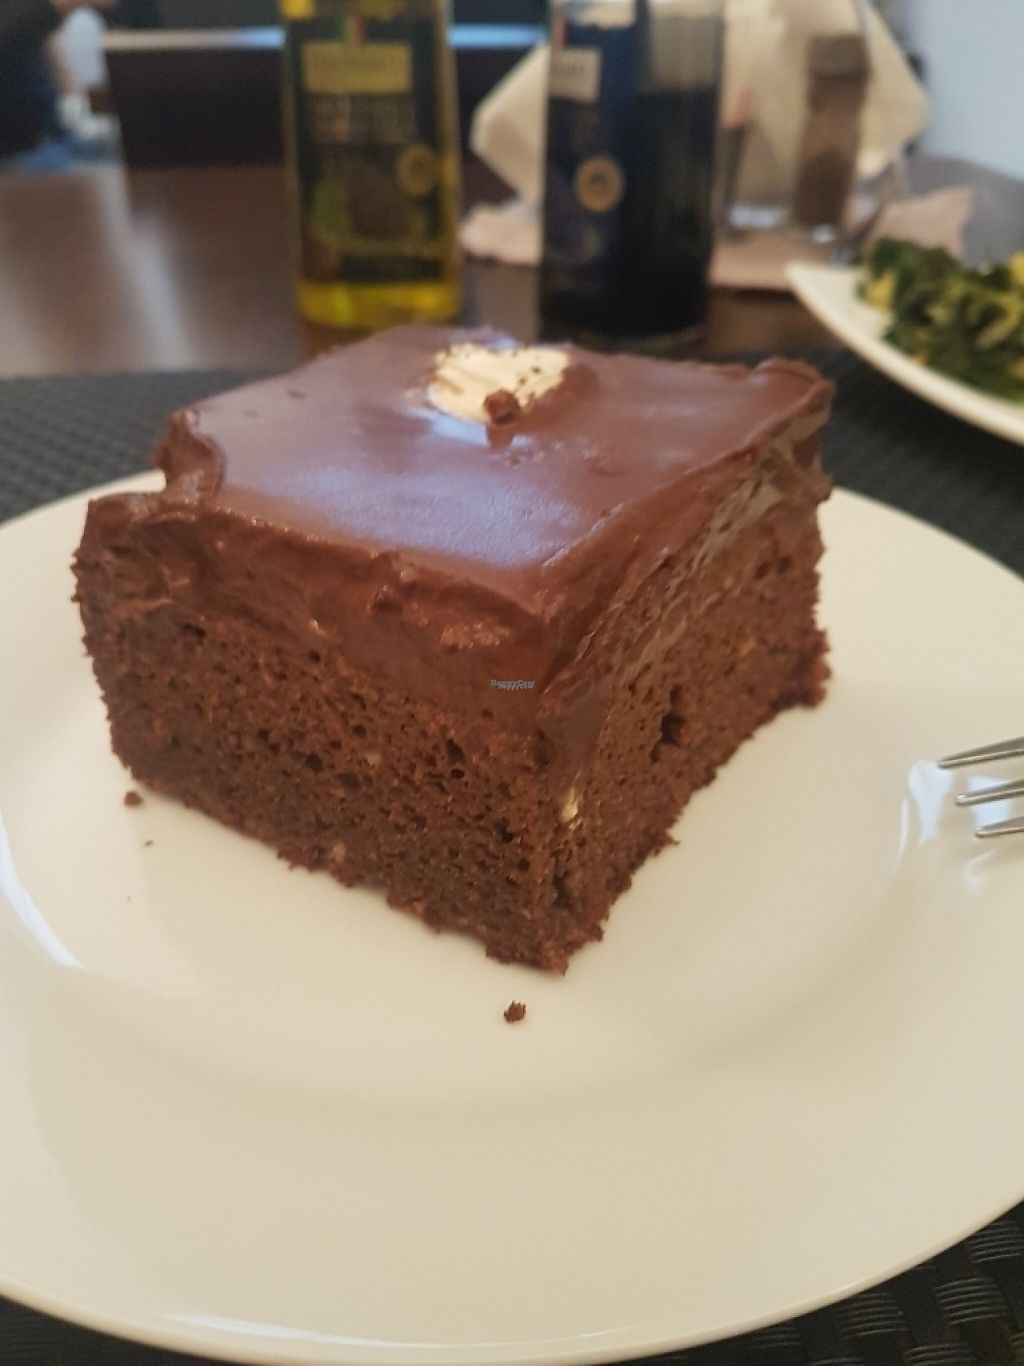 """Photo of Makro Vega  by <a href=""""/members/profile/Lucylu"""">Lucylu</a> <br/>Vegan choccy cake  <br/> April 24, 2017  - <a href='/contact/abuse/image/4047/251970'>Report</a>"""